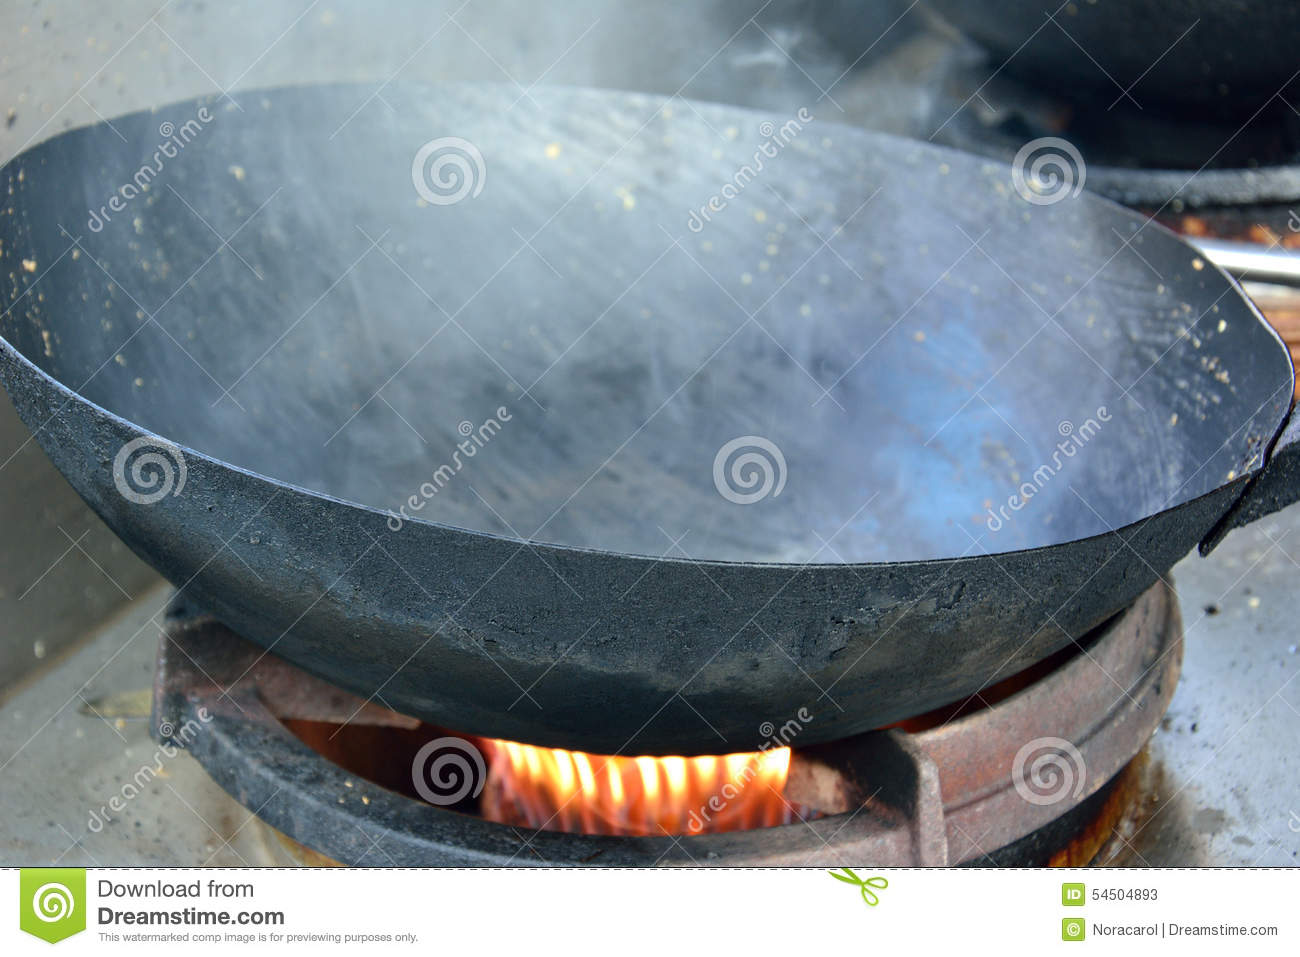 Hot Wok on a stove stock image. Image of restaurant, object - 54504893